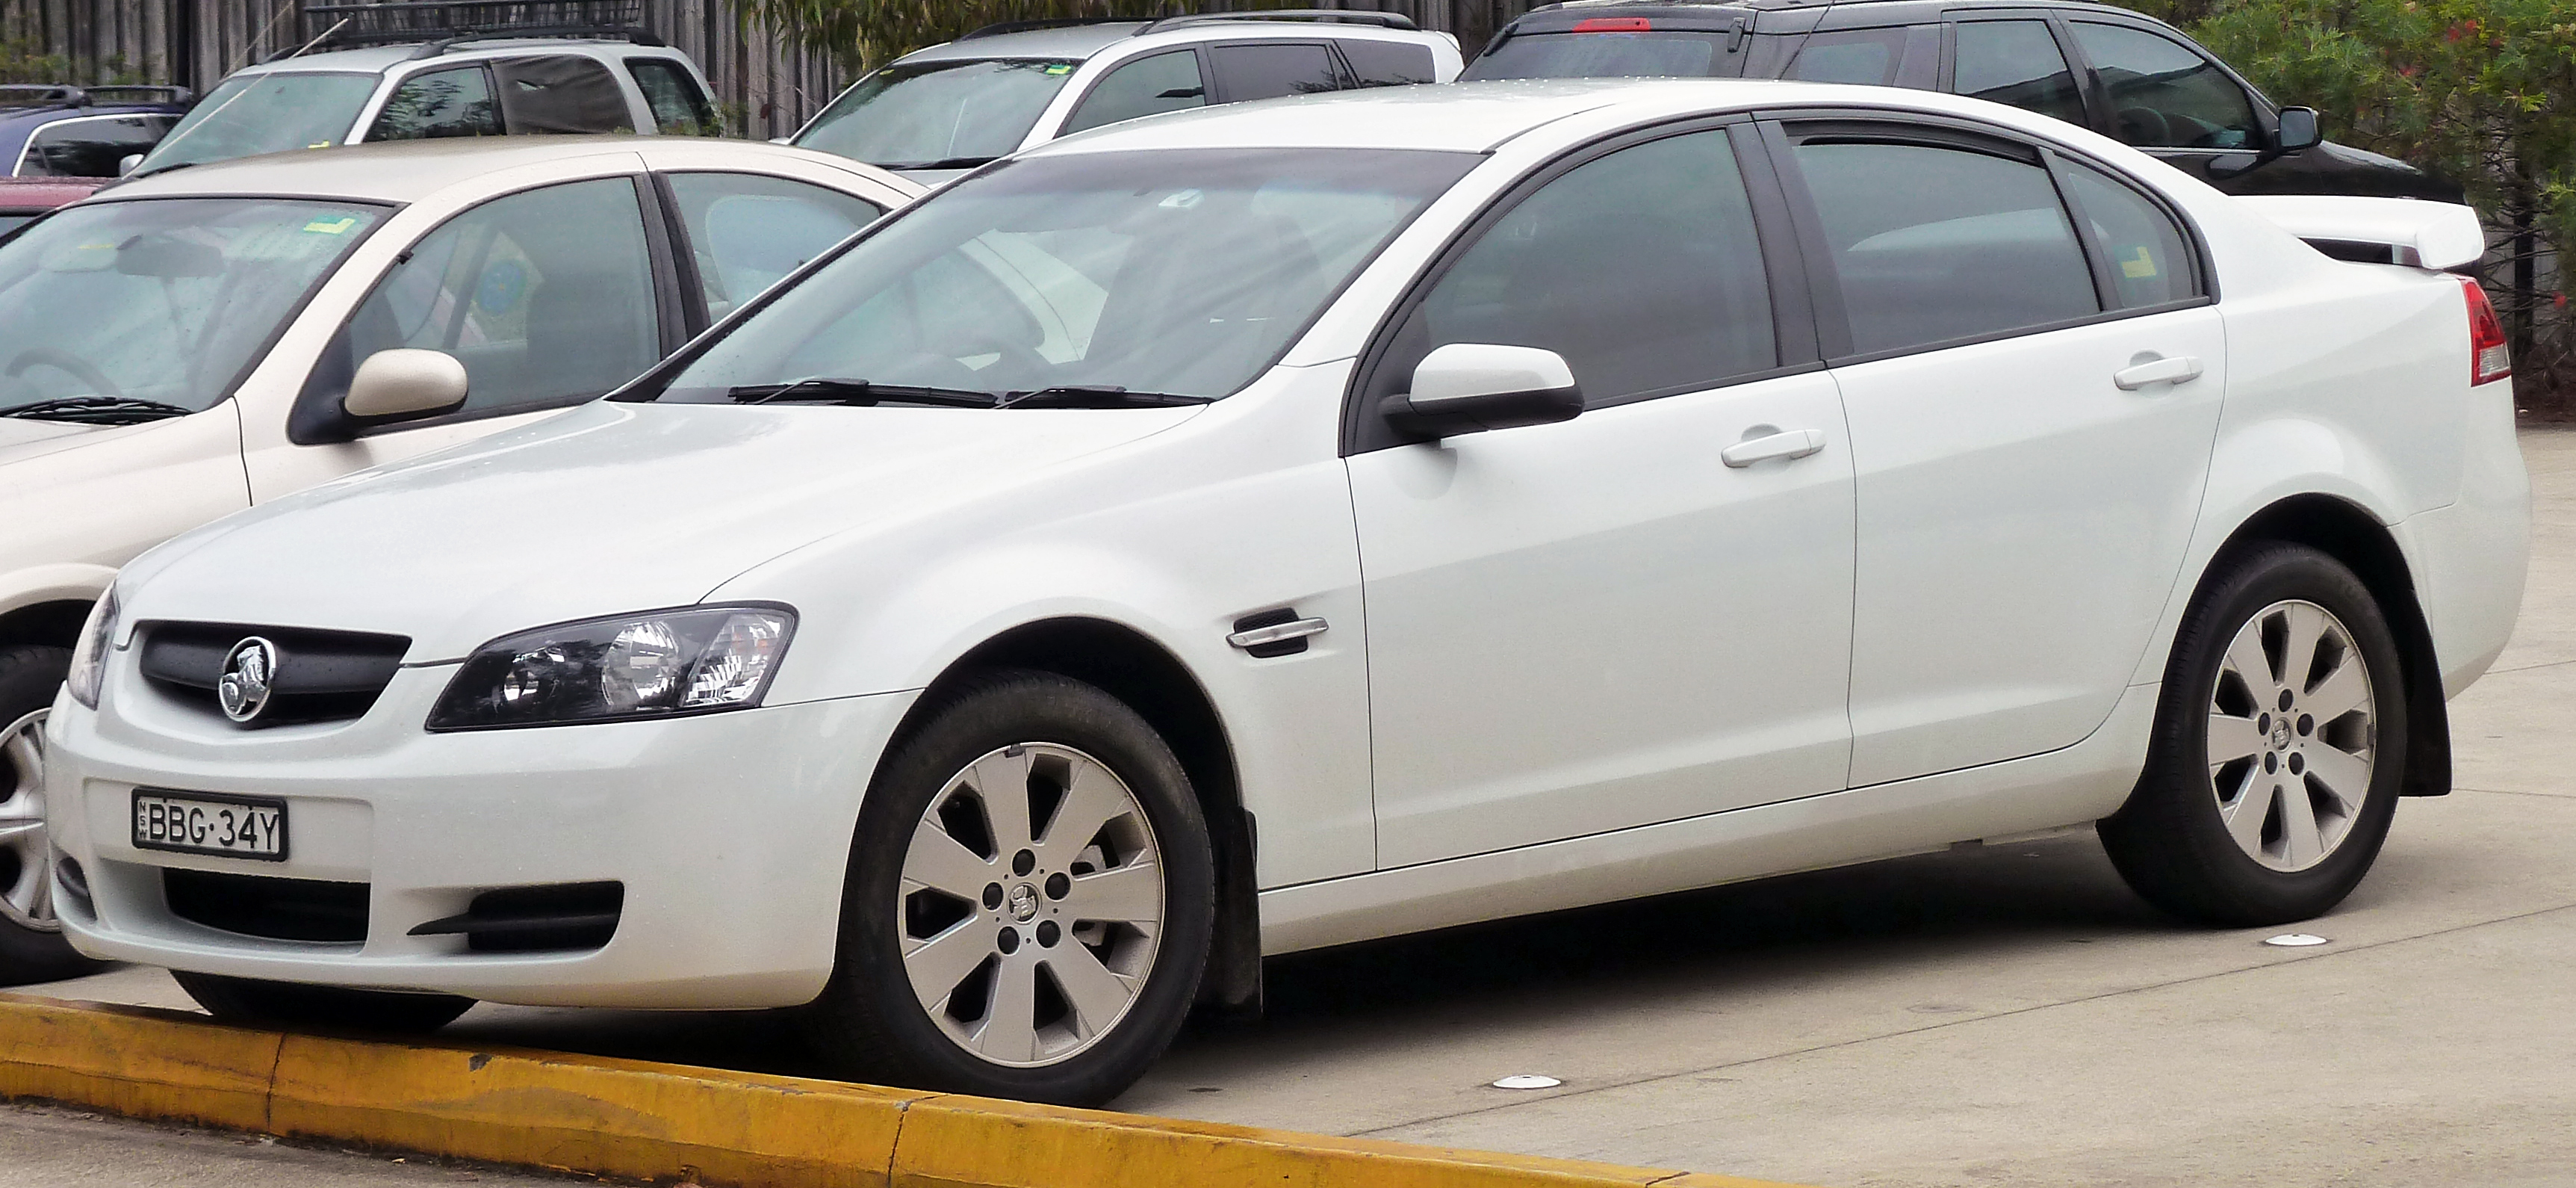 Pictures of holden commodore wagon (vt) 2007 #11